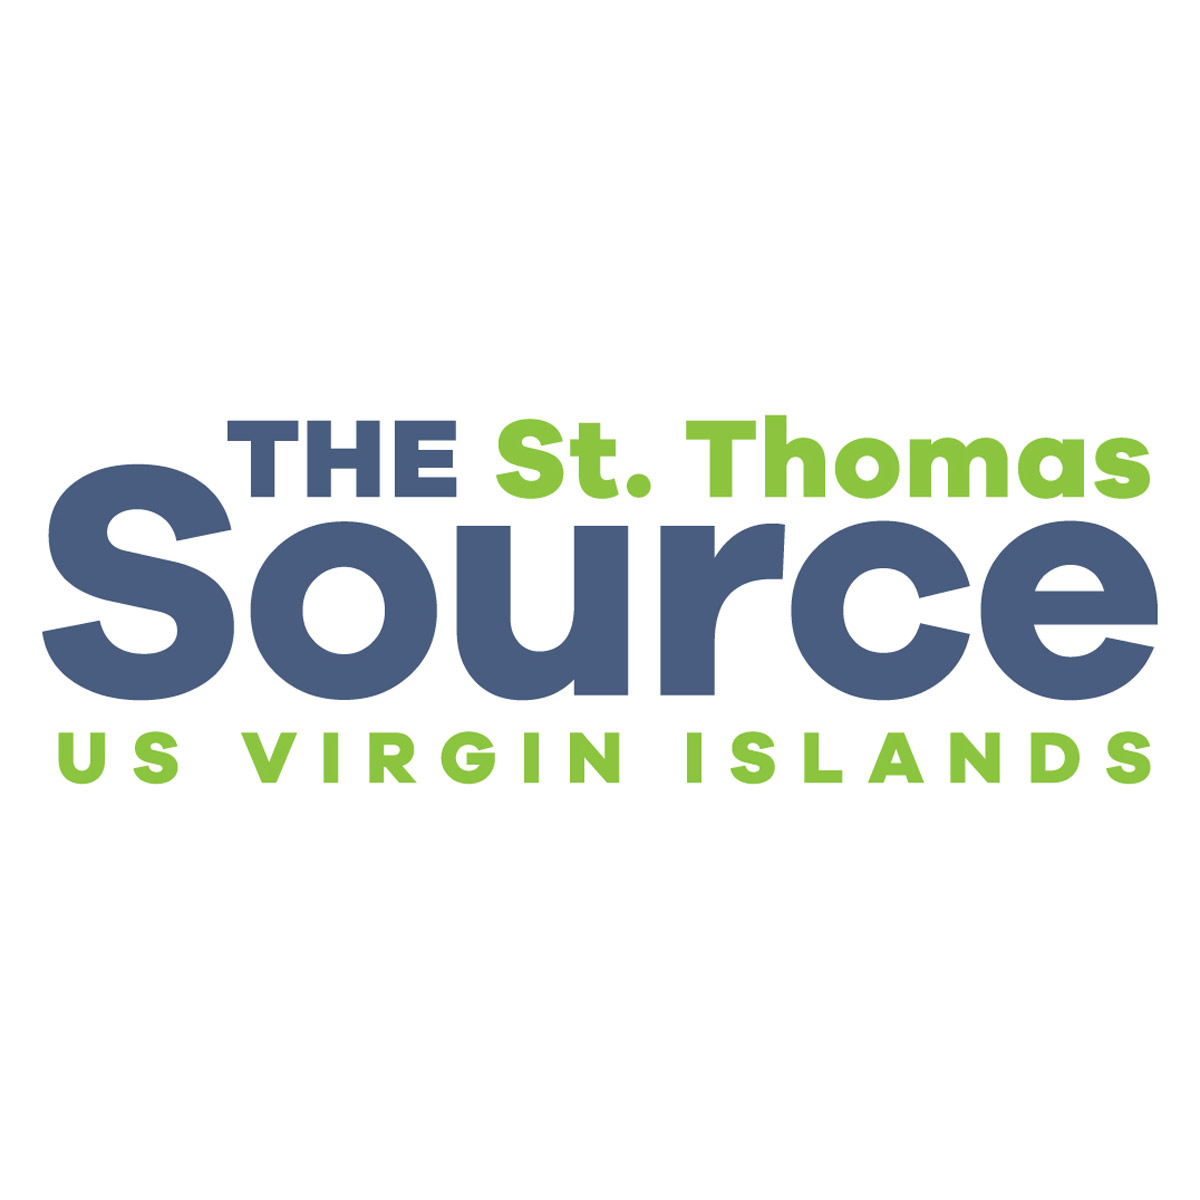 St thomas dating site